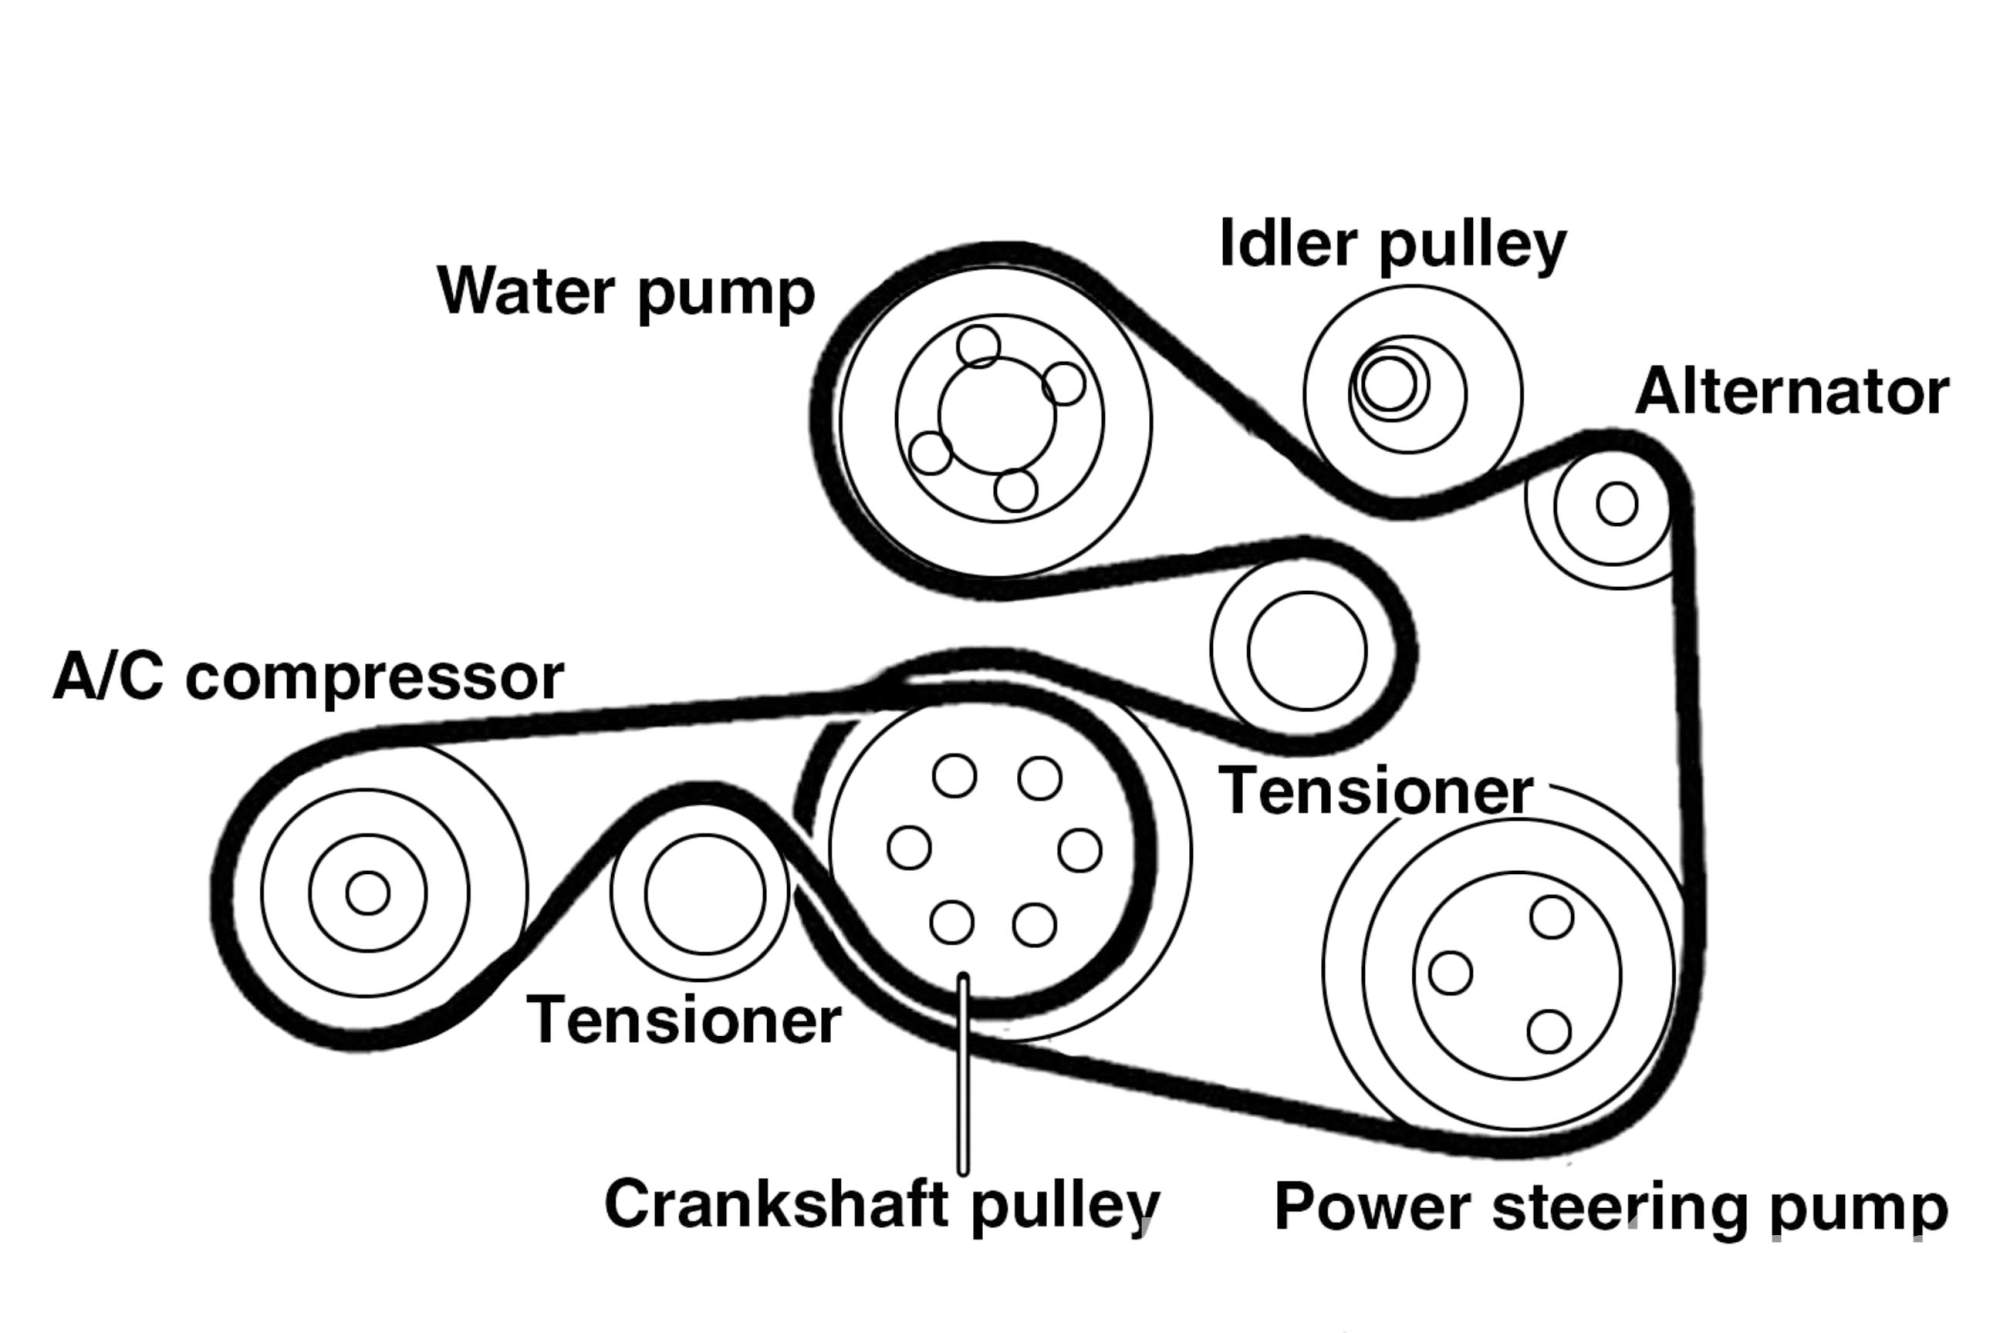 hight resolution of engine pulley diagram wiring diagram dat bmw e46 engine pulley diagram engine pulley diagram